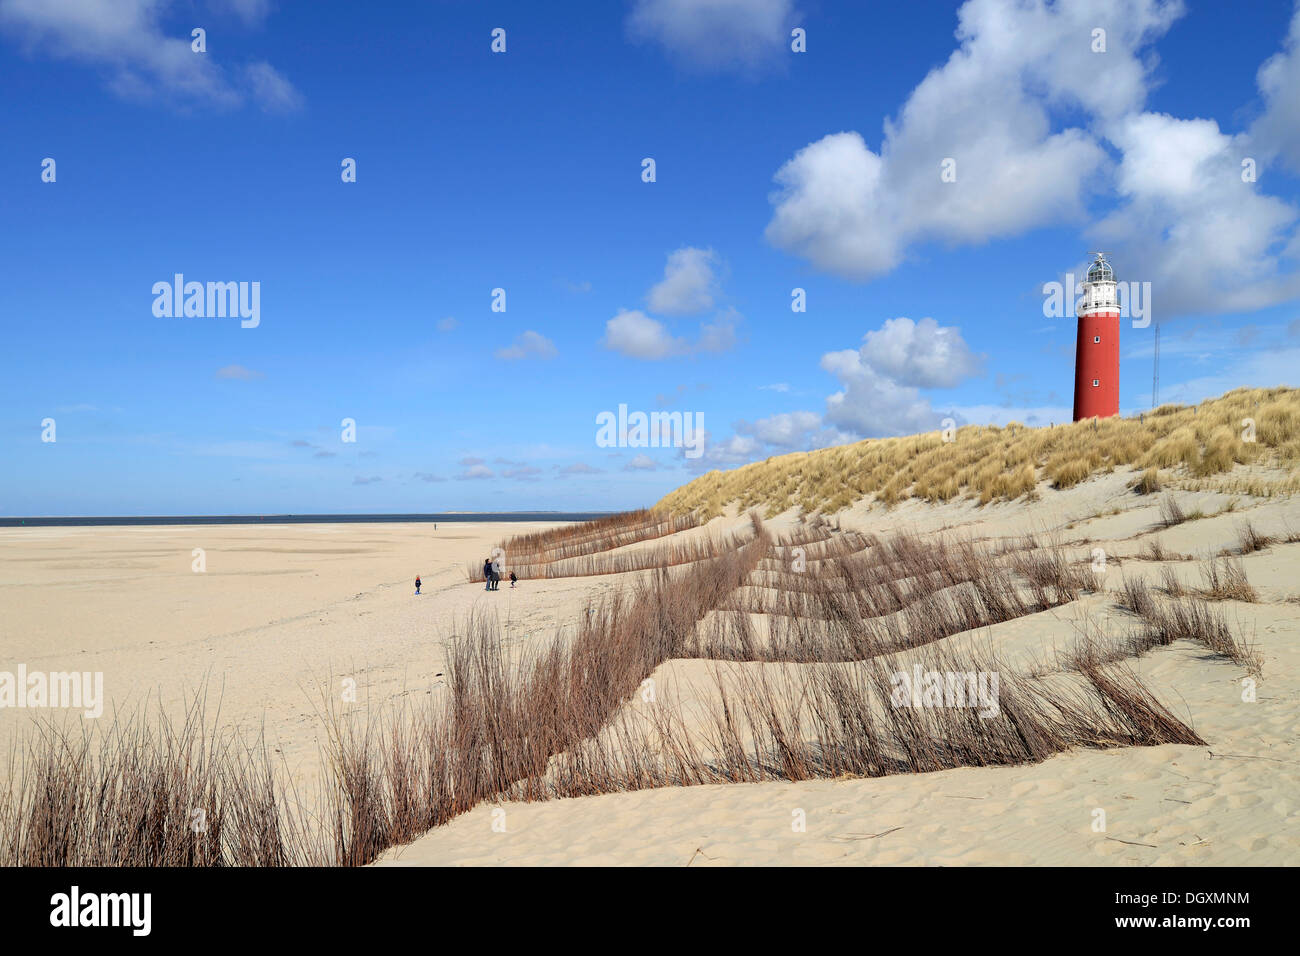 Eierland Lighthouse with dunes, De Cocksdorp, Texel, West Frisian Islands, province of North Holland, The Netherlands - Stock Image